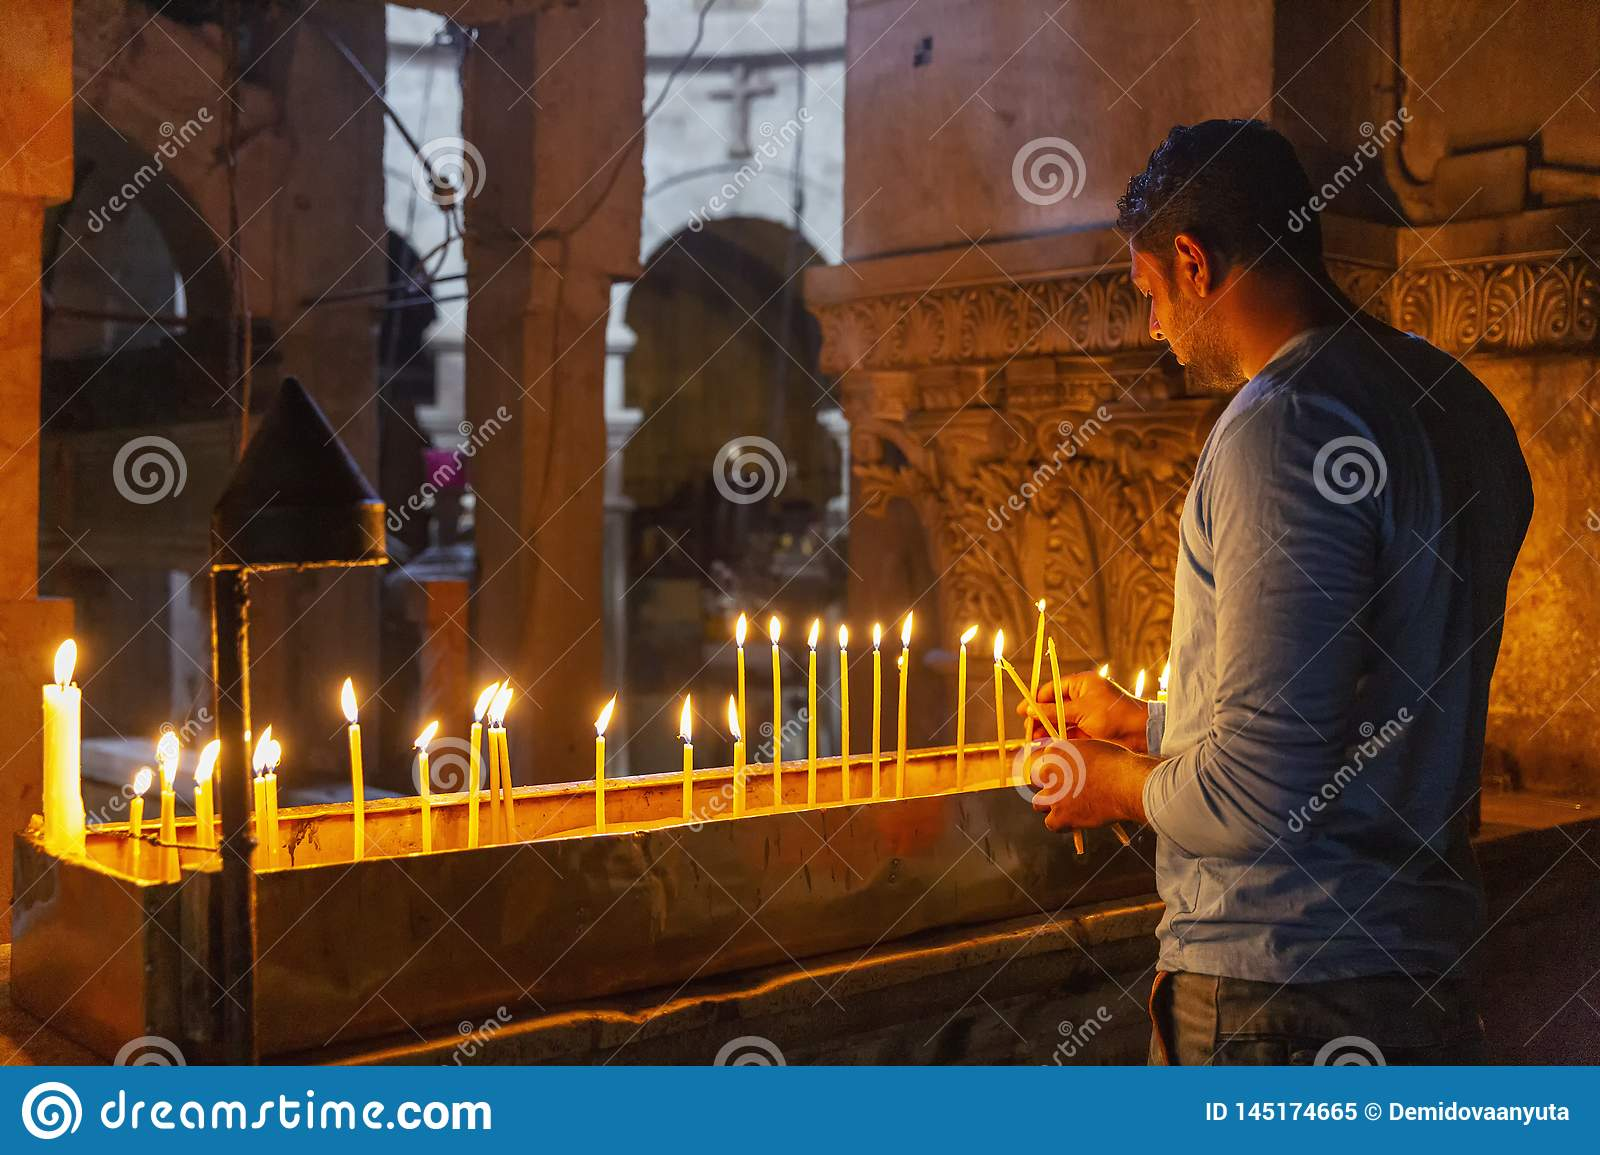 Jerusalem, Israel, 09/11/2016: A believing man puts candles and prays in the temple of the Holy Sepulcher